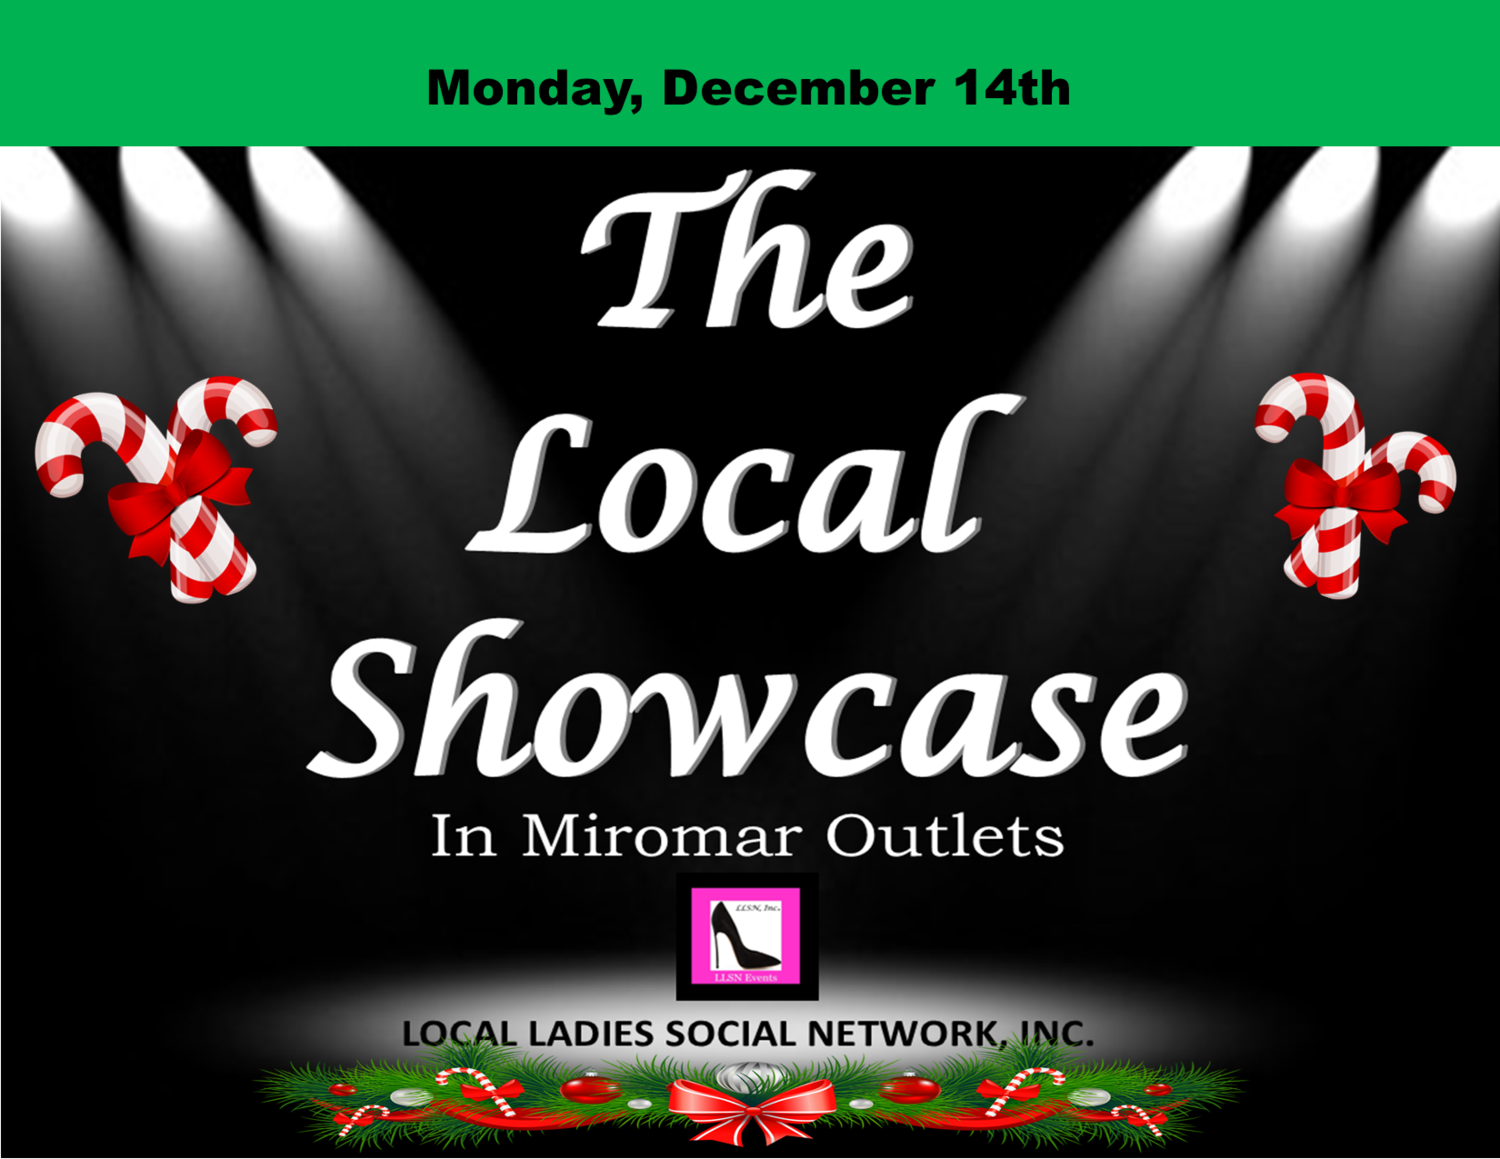 Monday, December 14th, 11am-7pm.